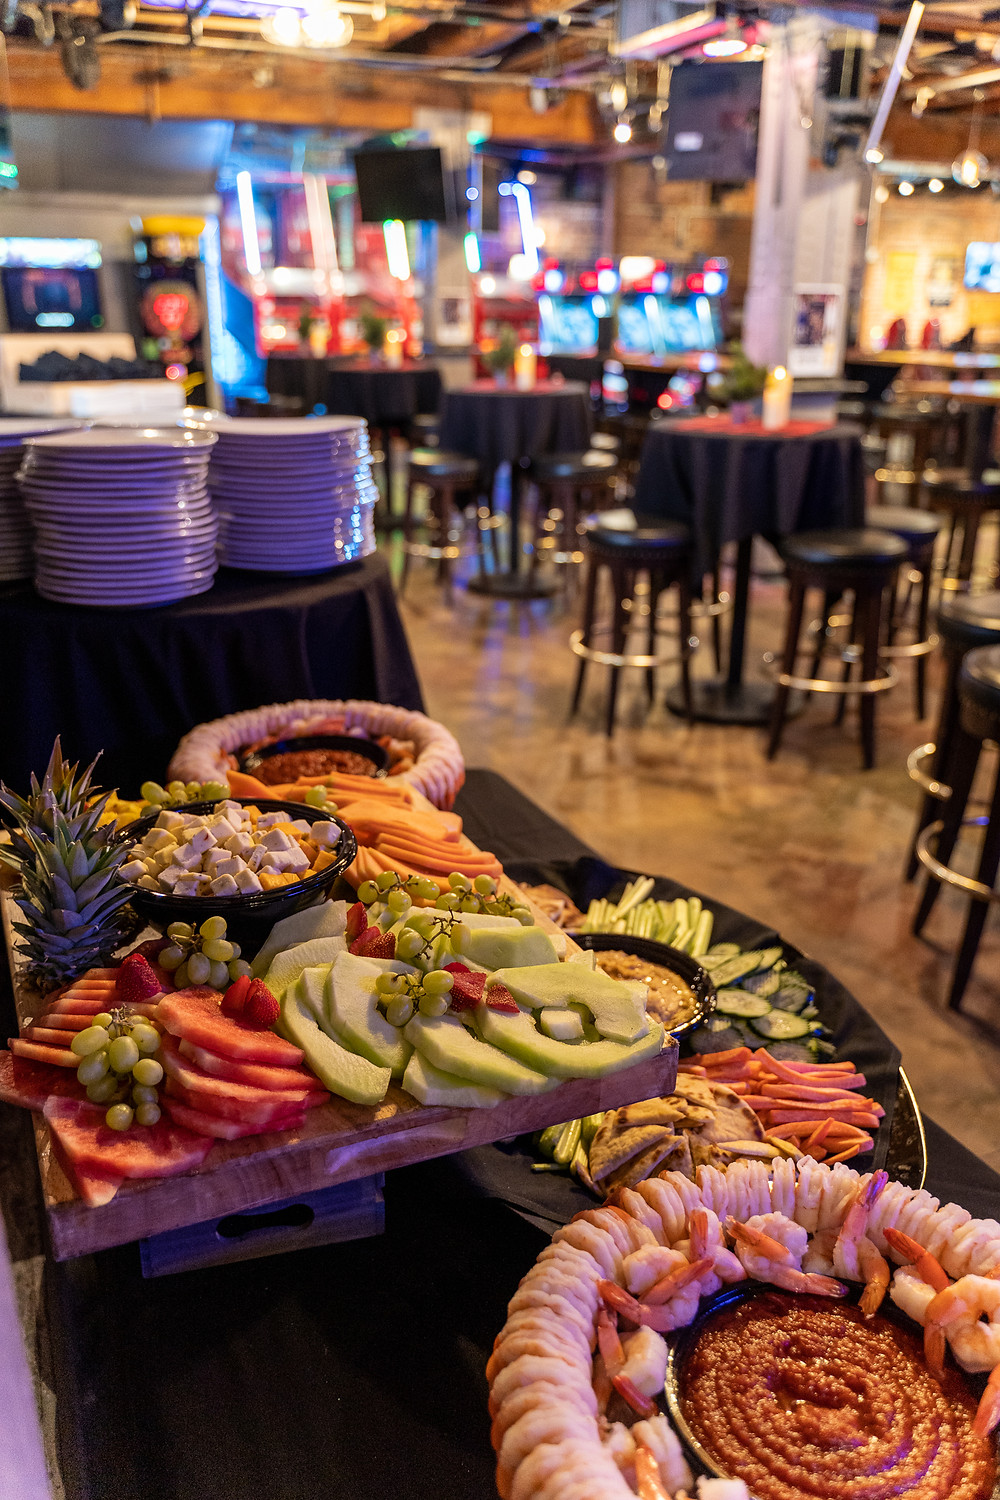 Fun Restaurants in Denver - Blake Street Tavern has great event venues for parties